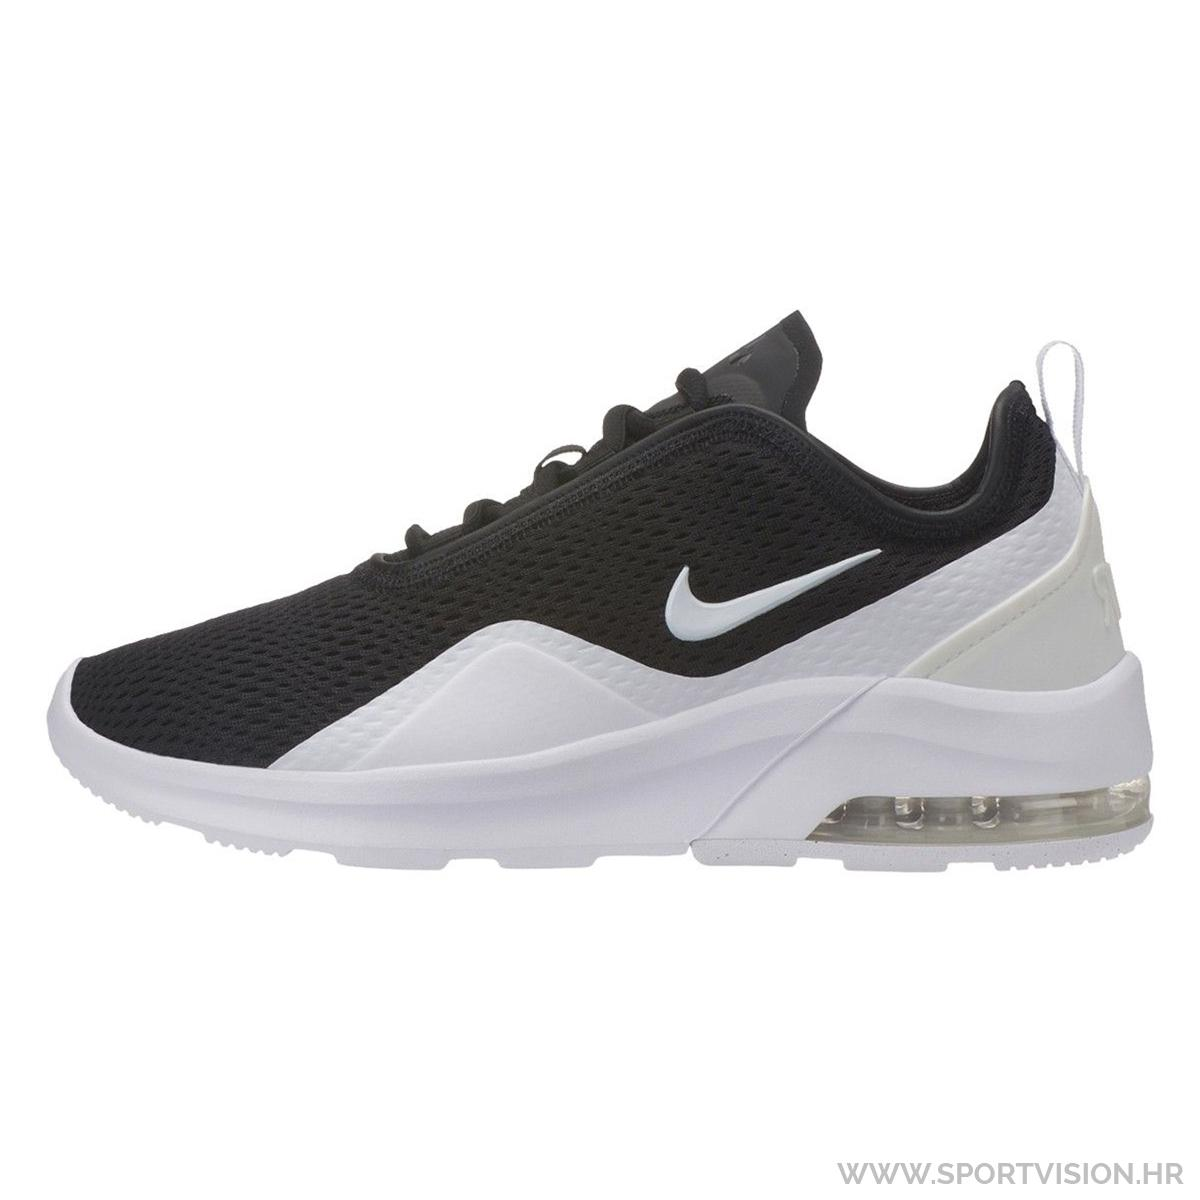 NIKE tenisice WMNS AIR MAX MOTION 2